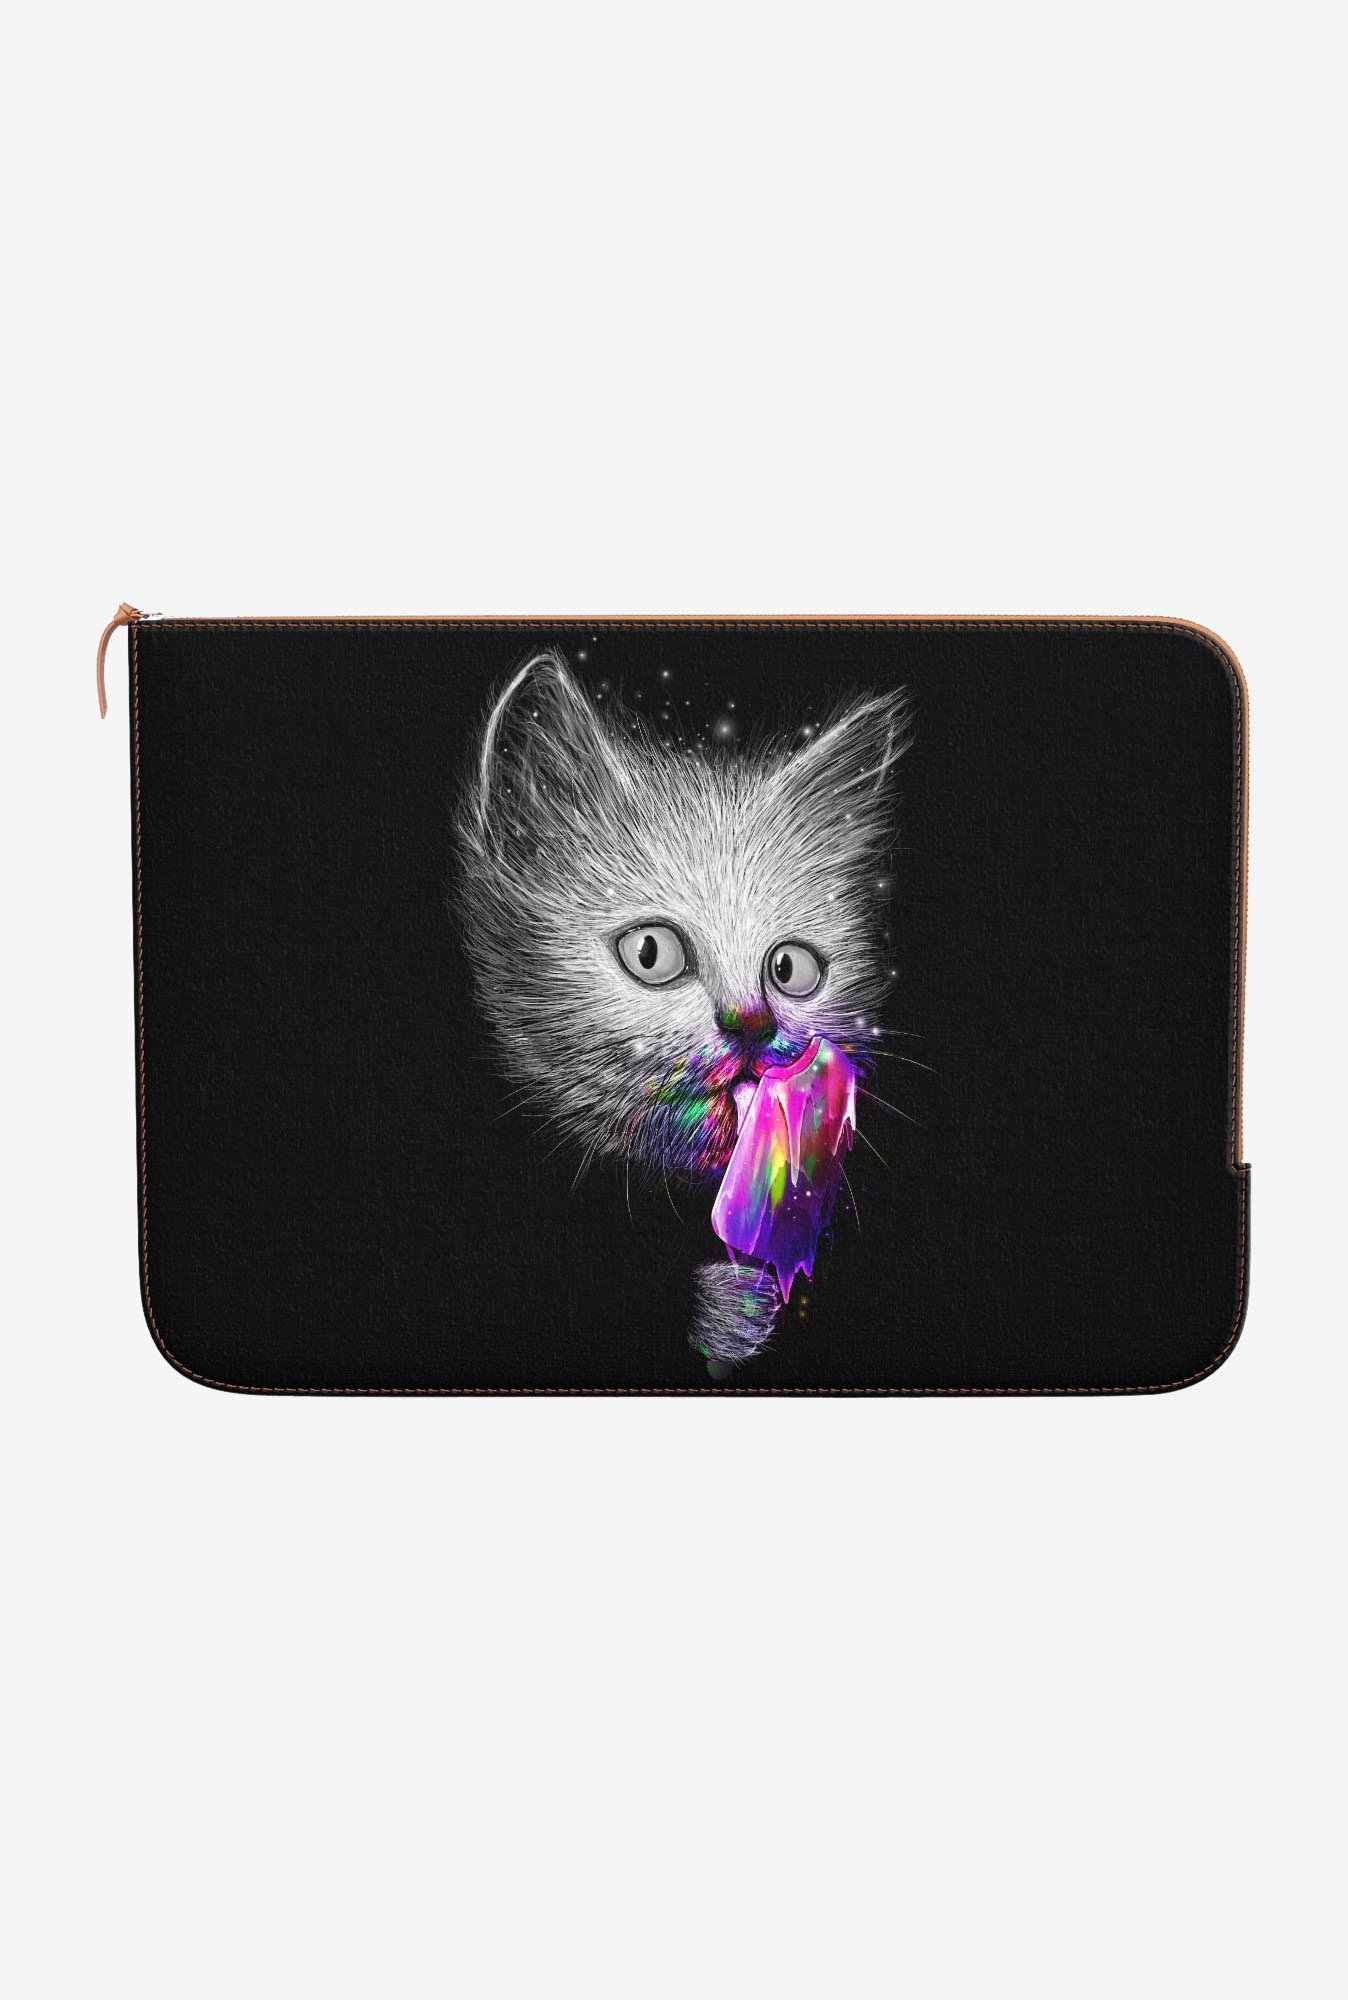 DailyObjects Cat Slurp MacBook Pro 15 Zippered Sleeve